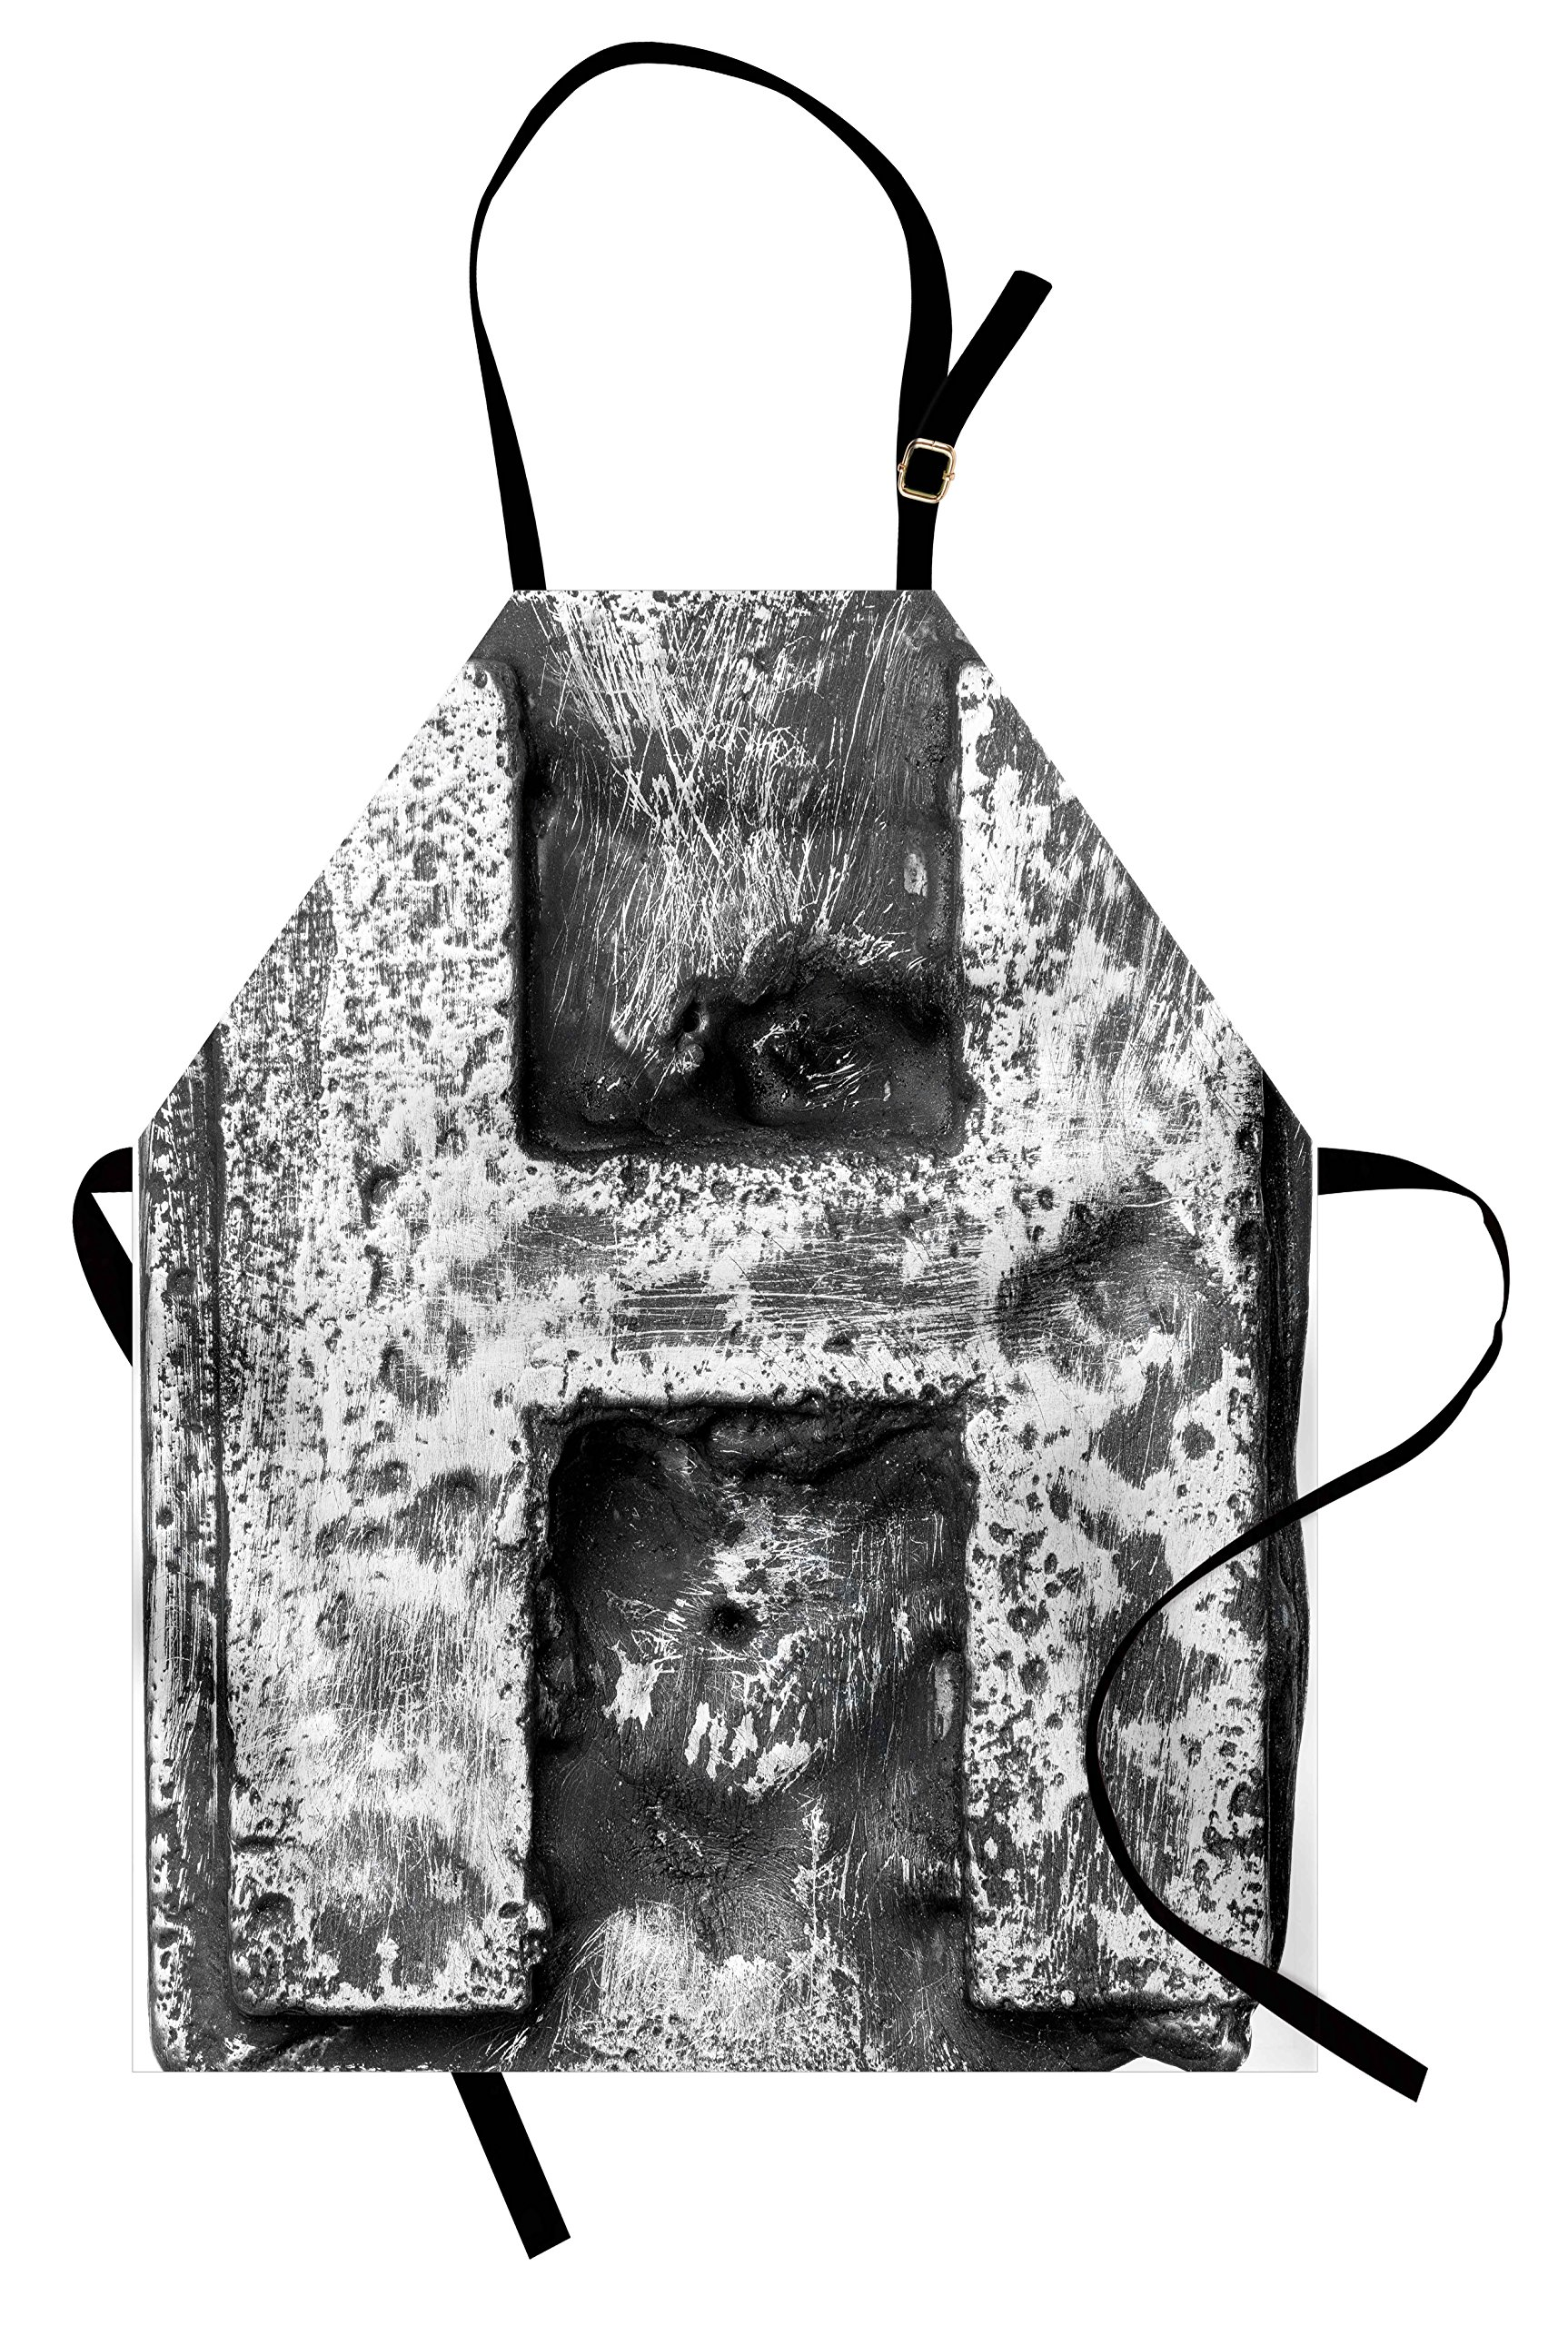 Ambesonne Letter H Apron, Victorian Stylized Capital H Font in Chrome Rock Tones Steel Look Retro Design, Unisex Kitchen Bib Apron with Adjustable Neck for Cooking Baking Gardening, Black Grey